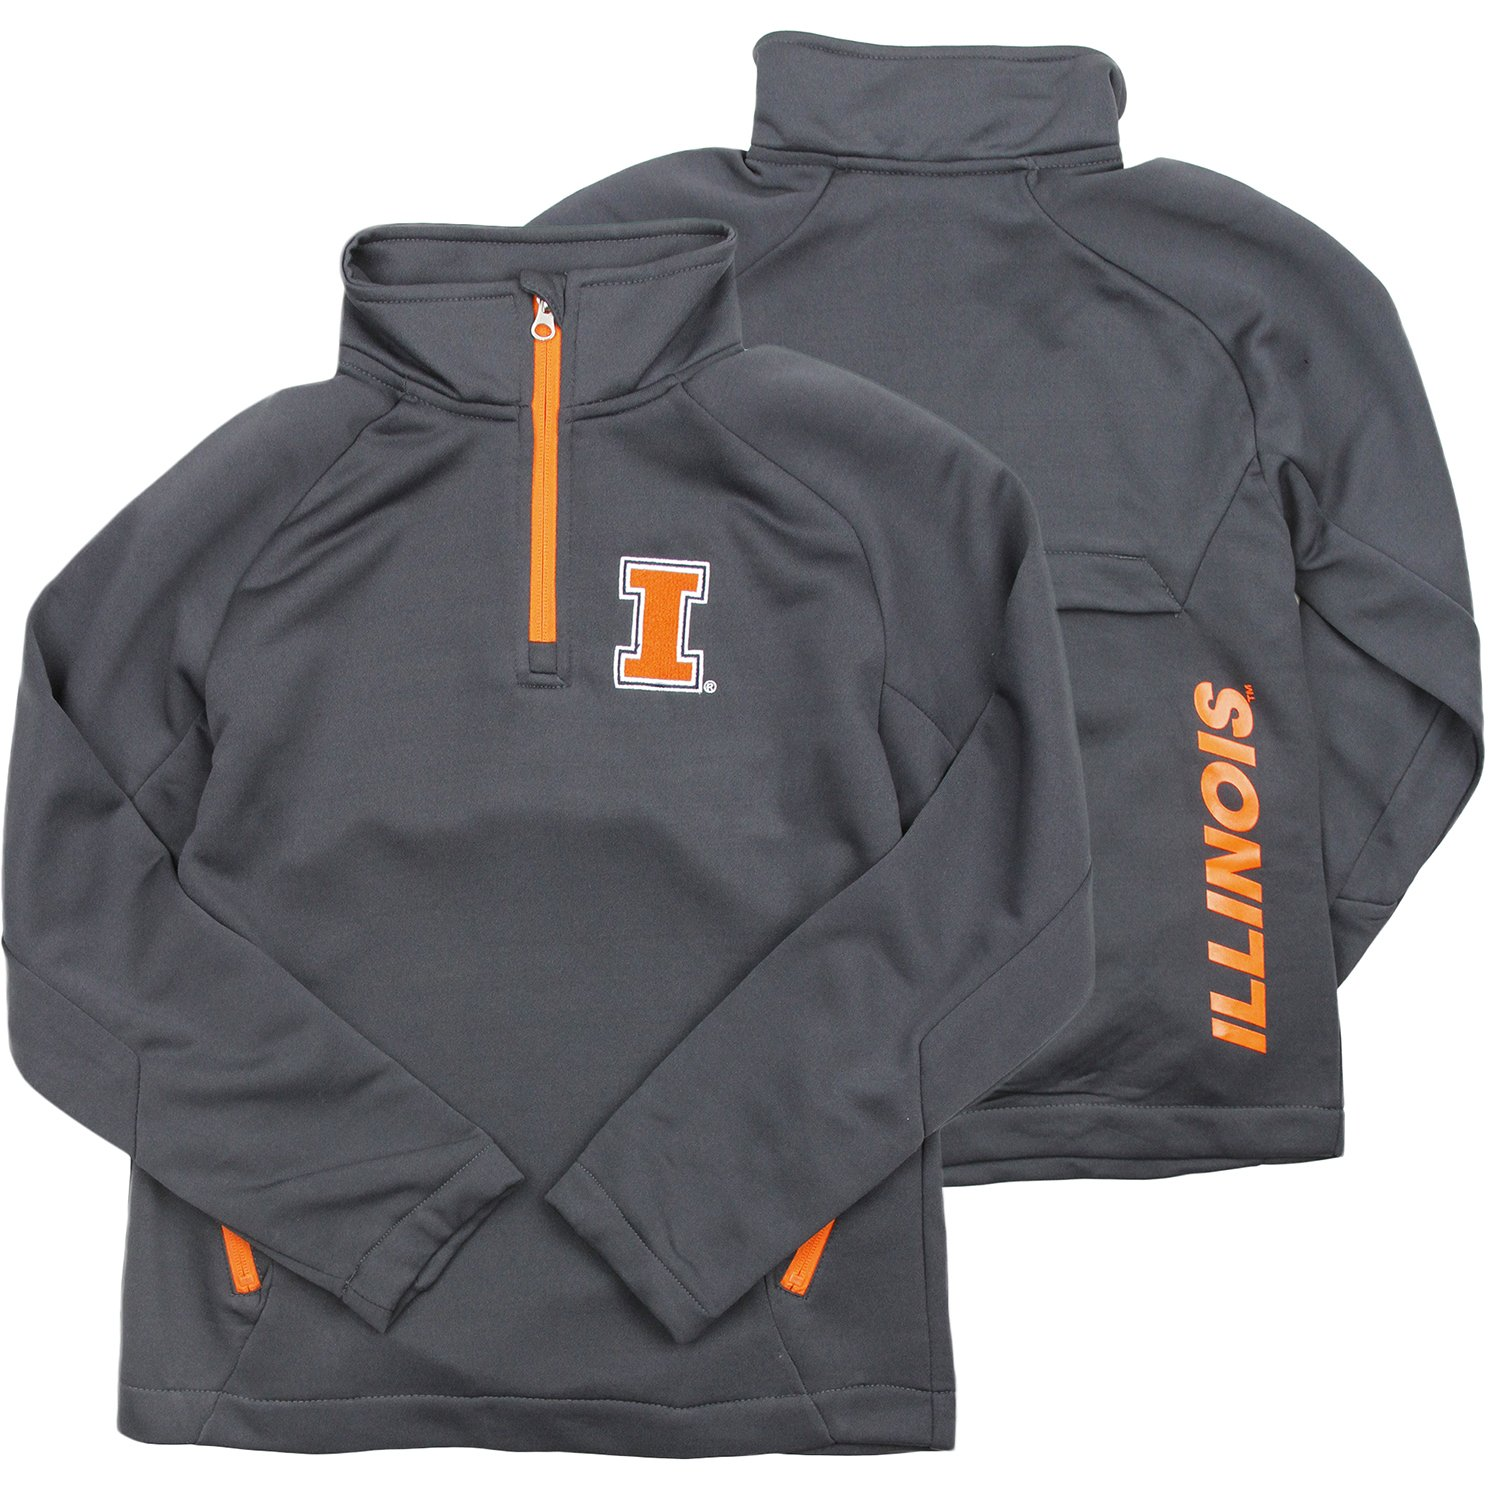 Genuine Stuff NCAA Youth Boys University of Illinois Fighting Illini Aviator Sweatshirt